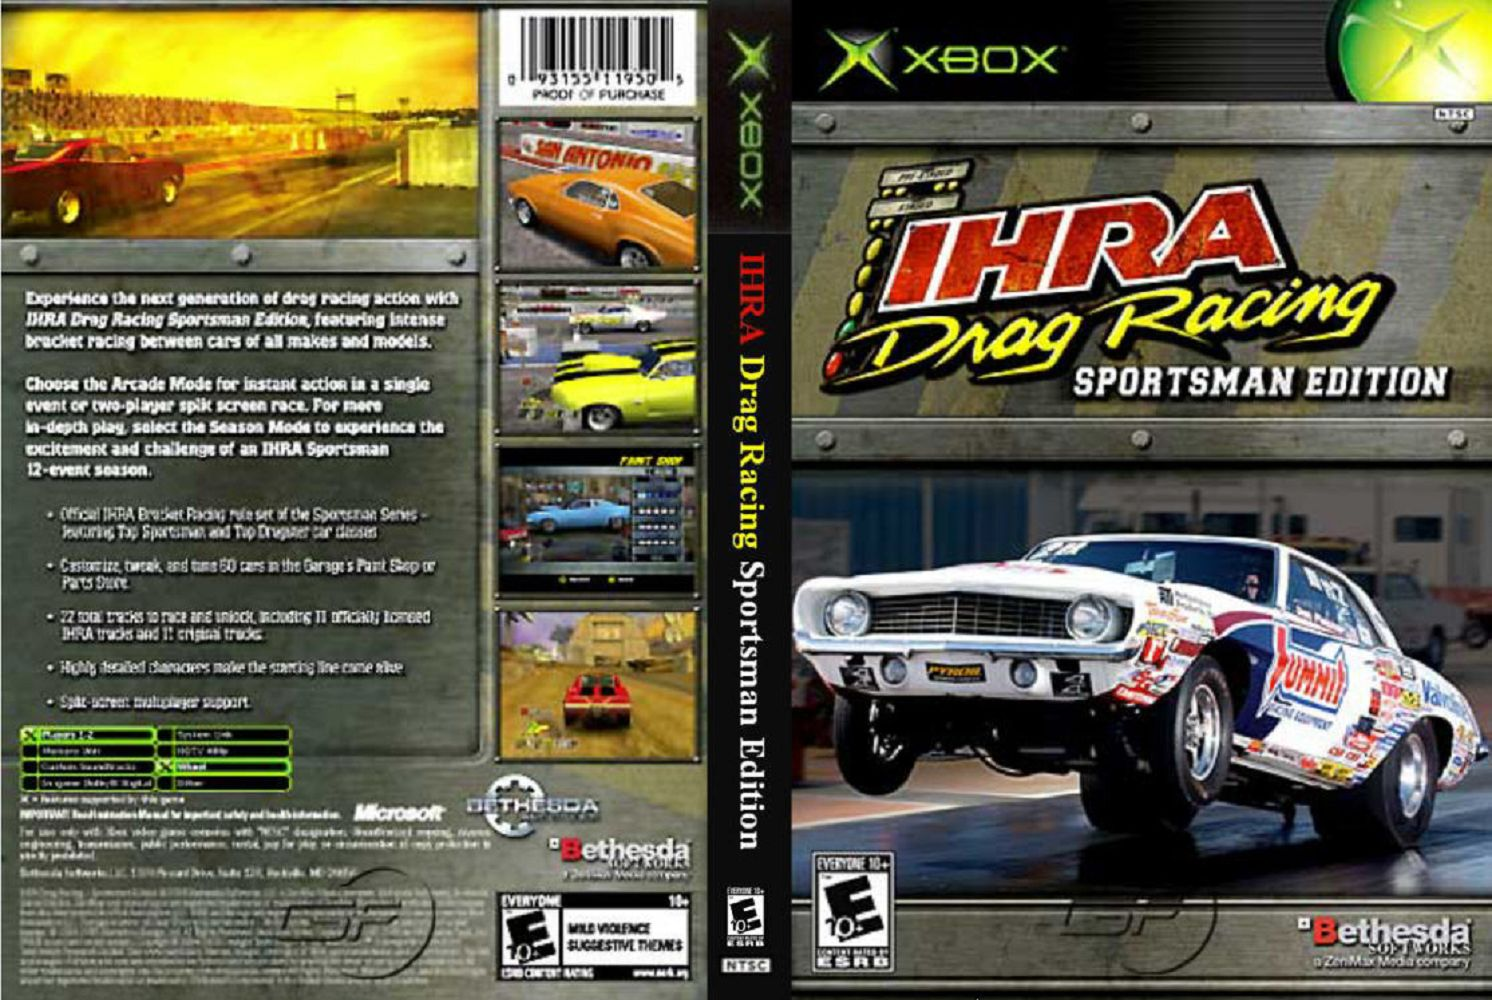 ihra drag racing sportsman edition download